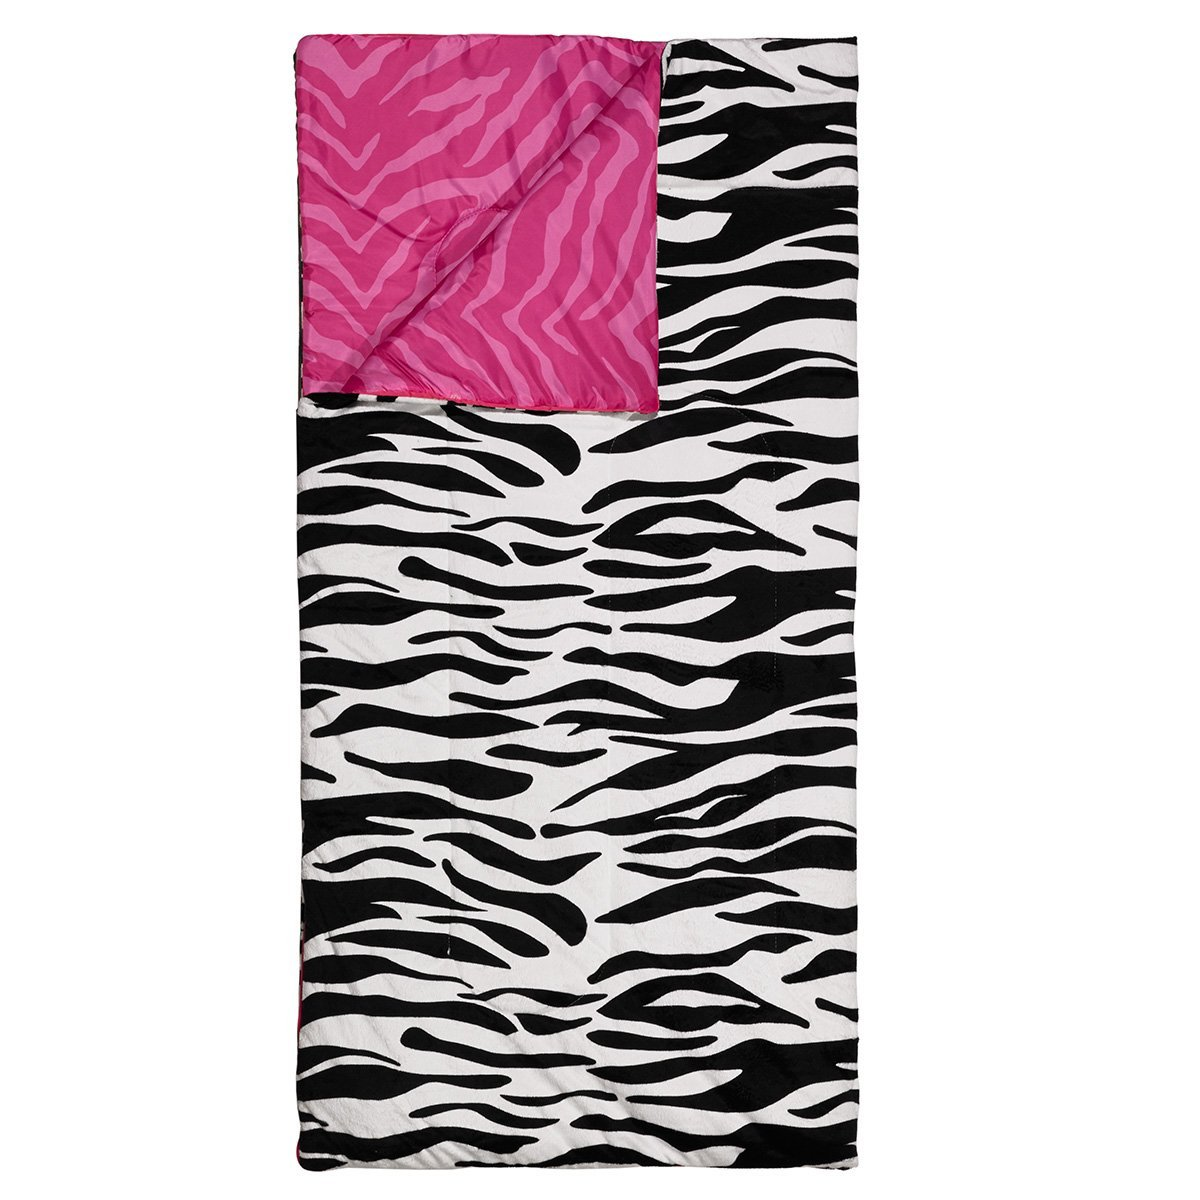 Three Cheers 3C4G Reversible Sleeping Bag, Zebra-licious